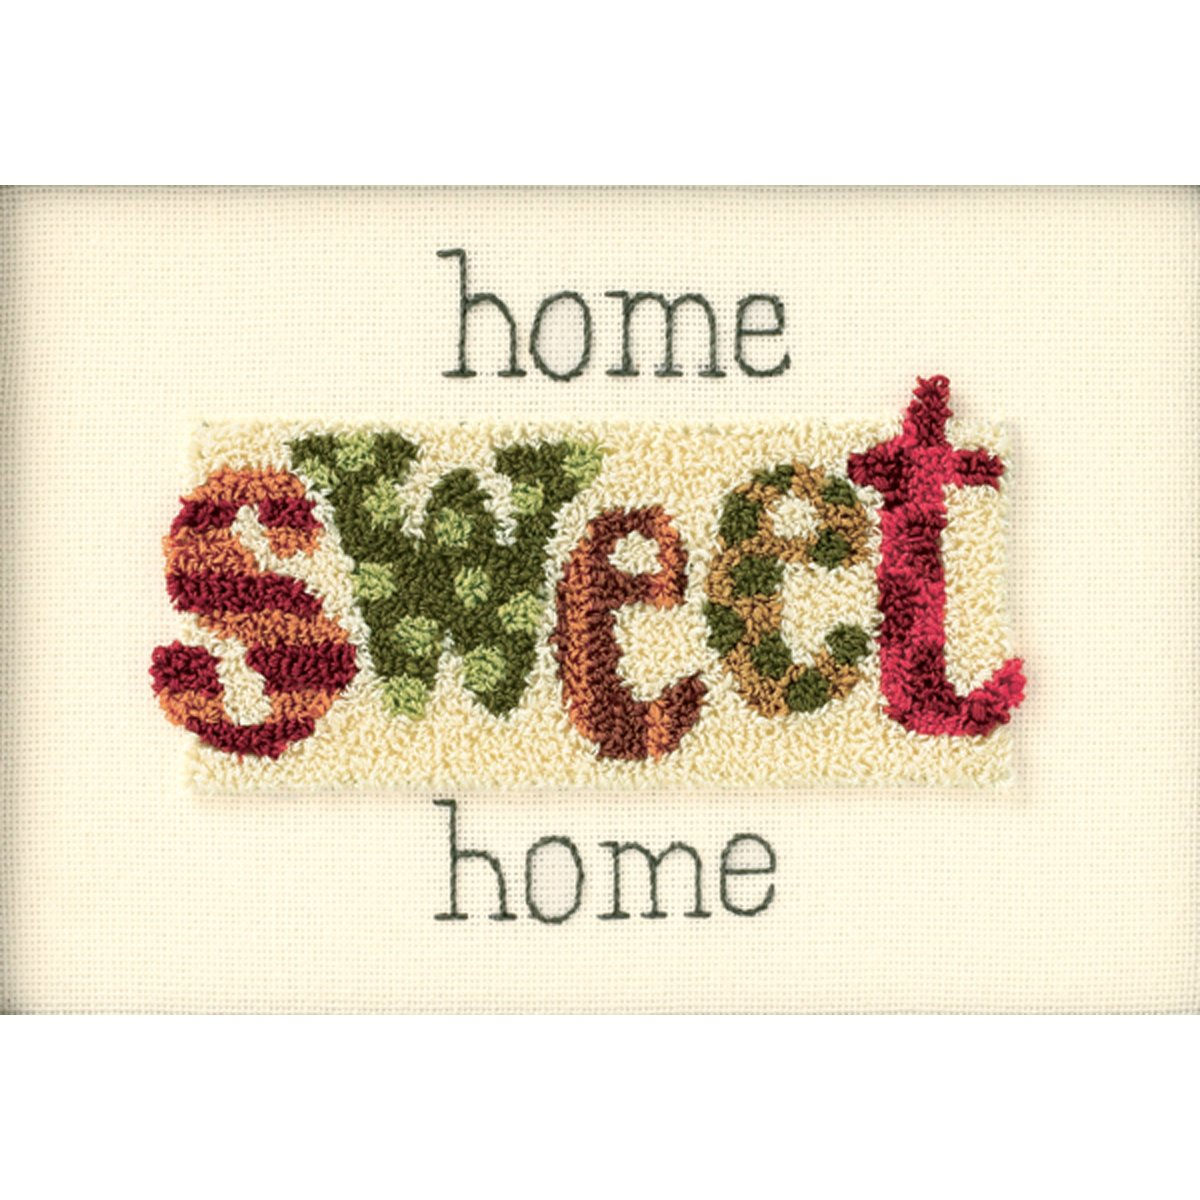 Home Sweet Home Punch Needle Kit-7x5 Dimensions 4336937254